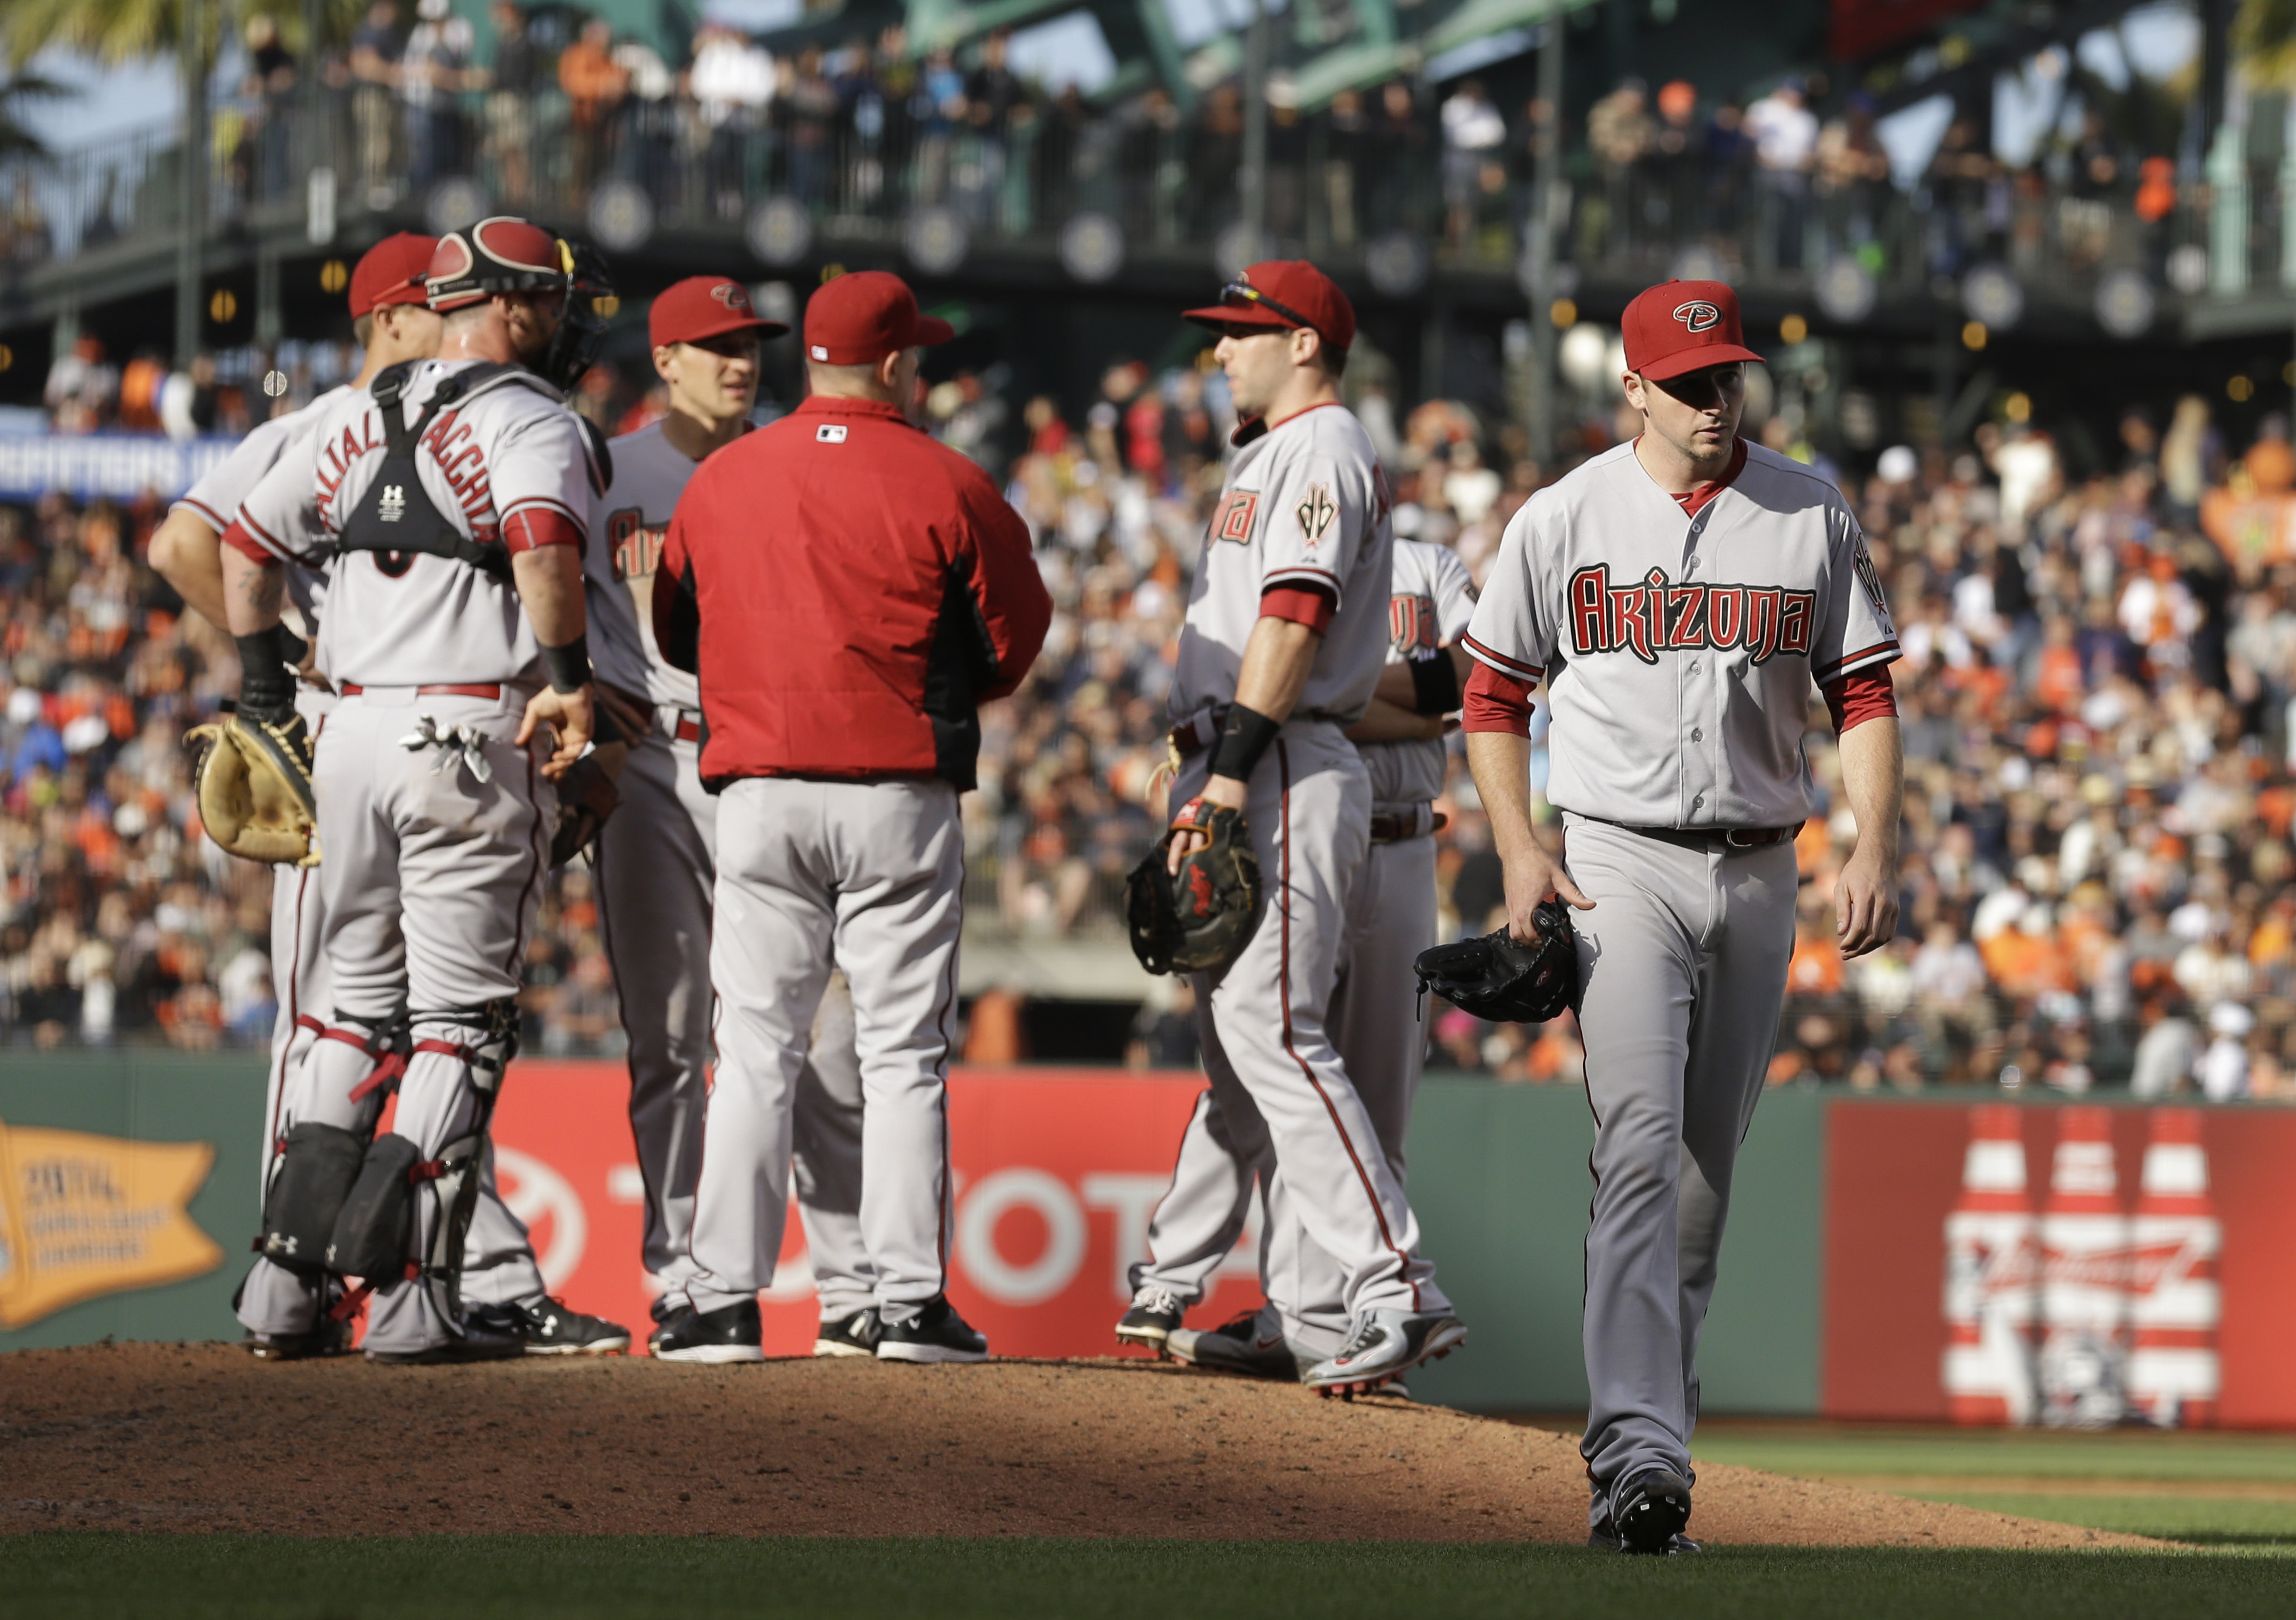 Arizona Diamondbacks' Allen Webster, right, leaves the baseball game against the San Francisco Giants in the sixth inning Saturday, June 13, 2015, in San Francisco. (AP Photo/Ben Margot)